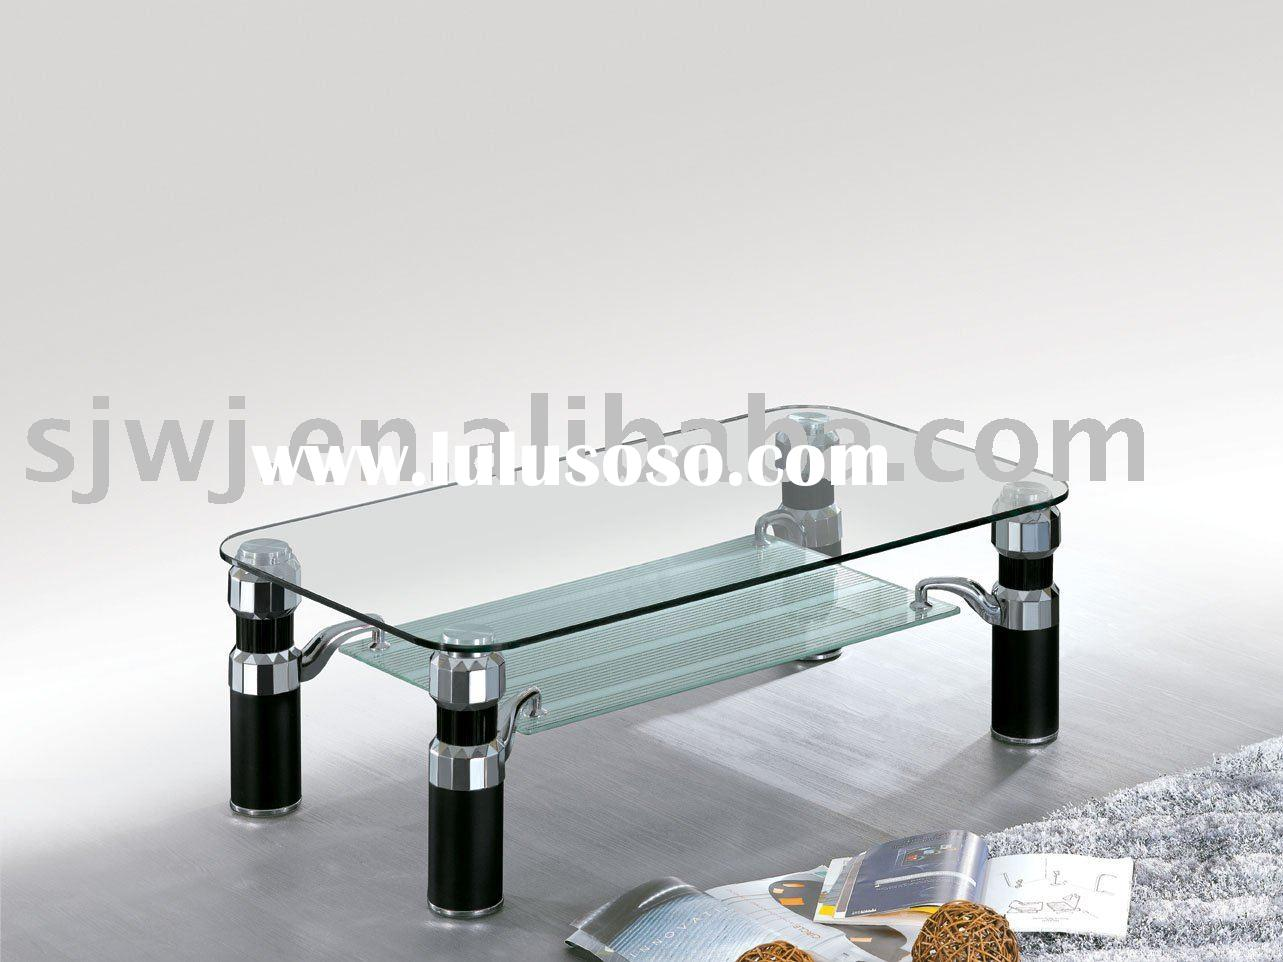 S006 Series Height 75cm Stainless Steel Table Leg For